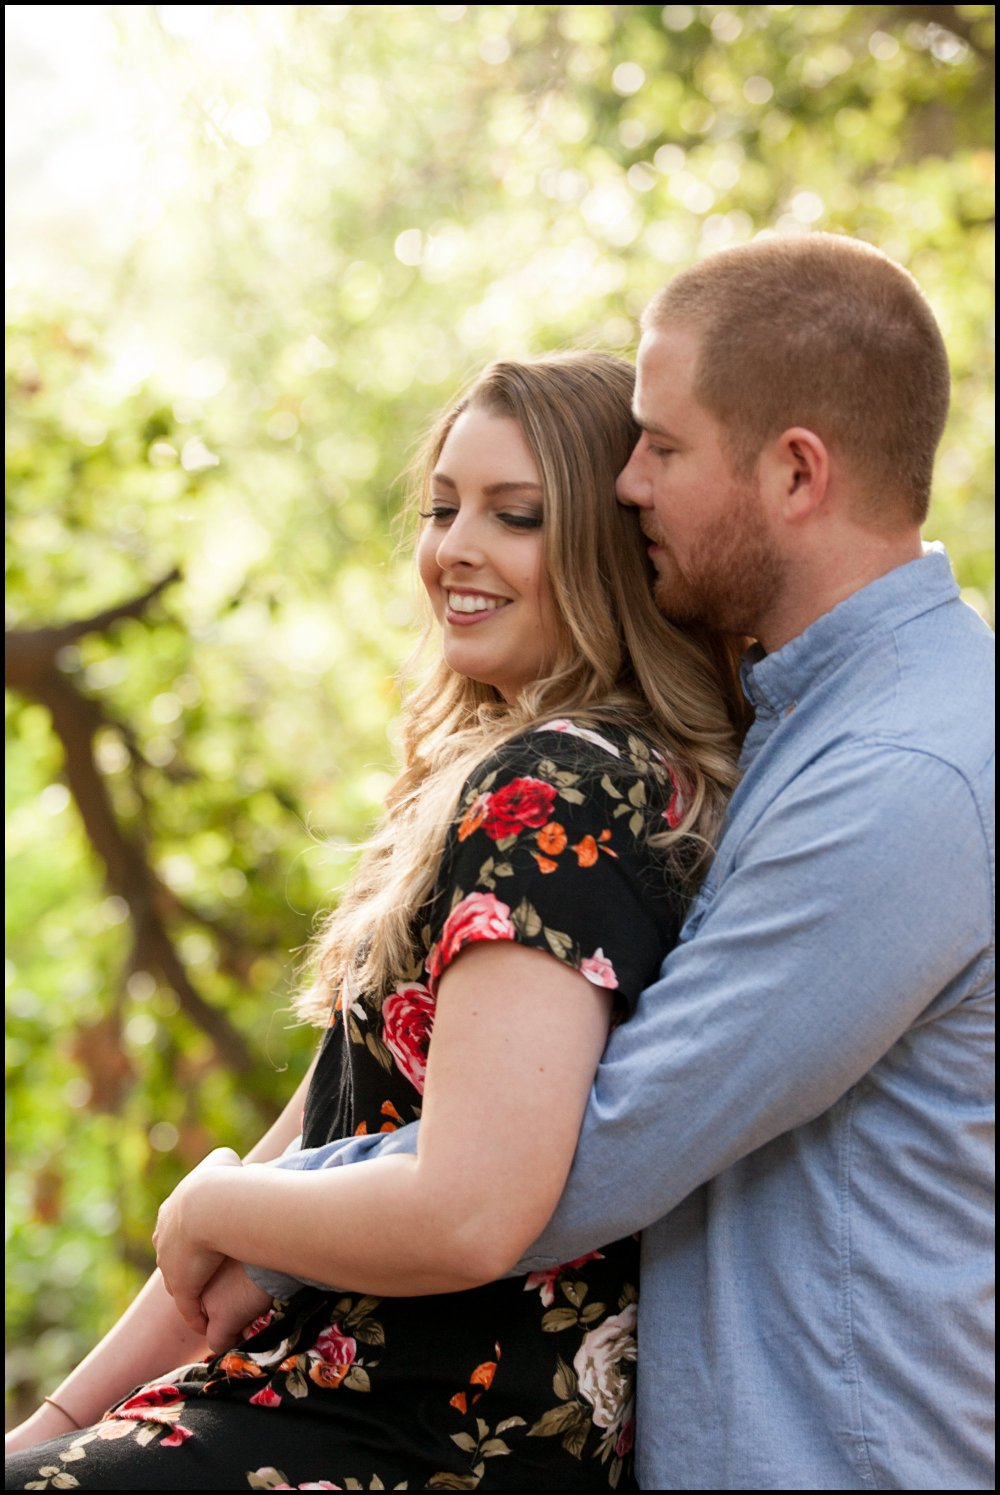 cassia_karin_photography_cj_hillary_simi_valley_california_engagement_shoot_tunnel_trees_love-12.jpg